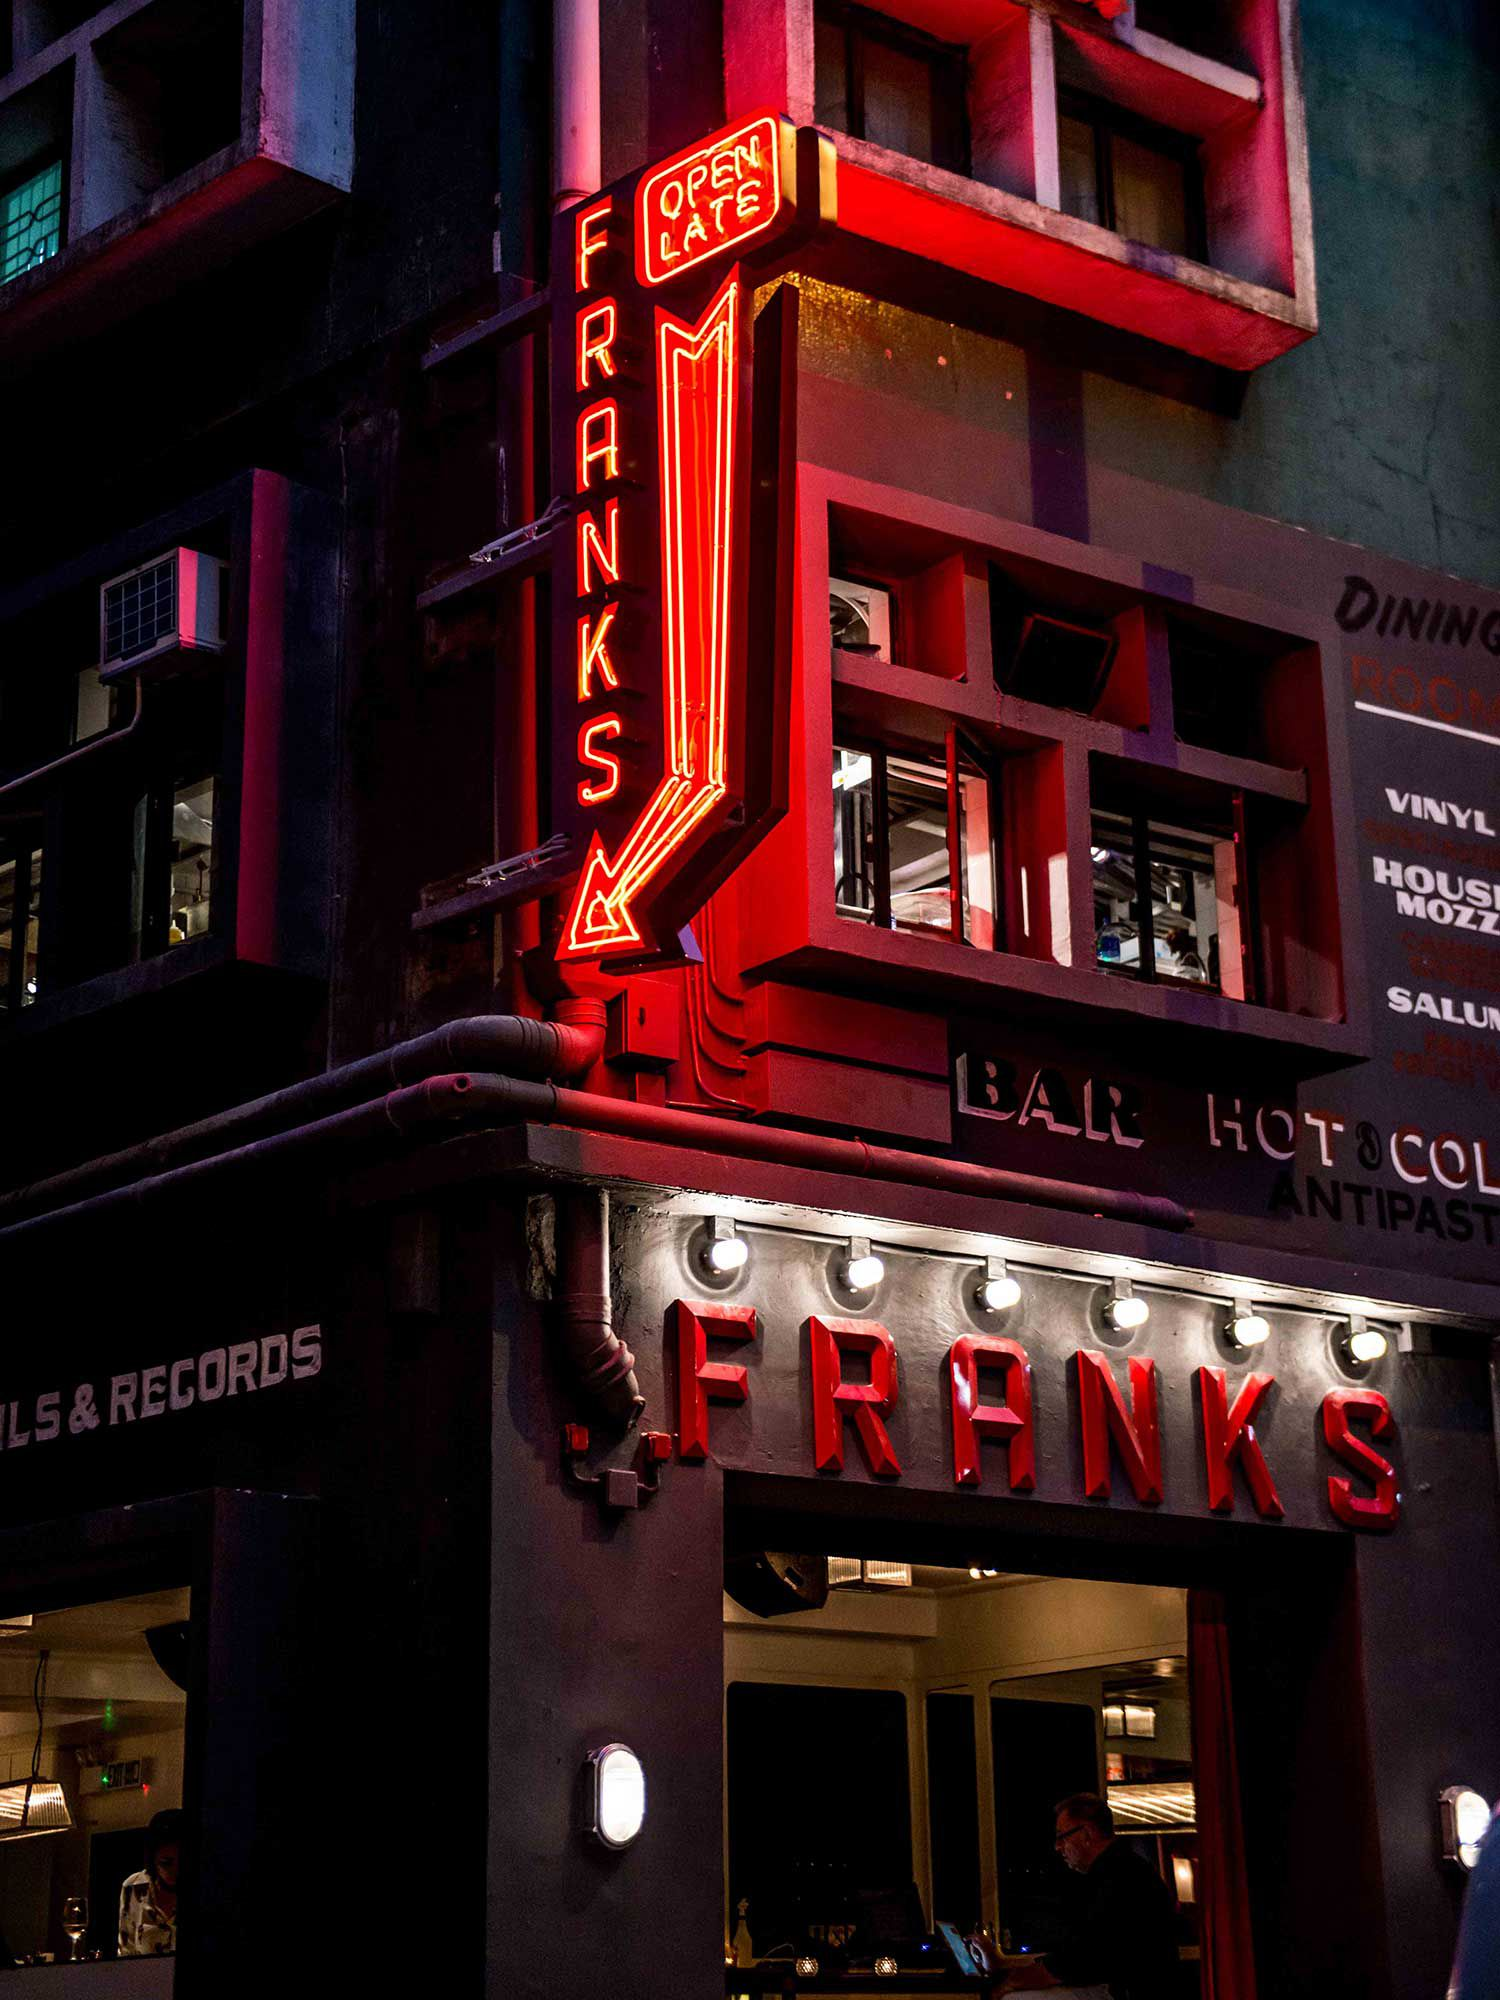 Darling's newest restaurant Frank's opened in early 2019.